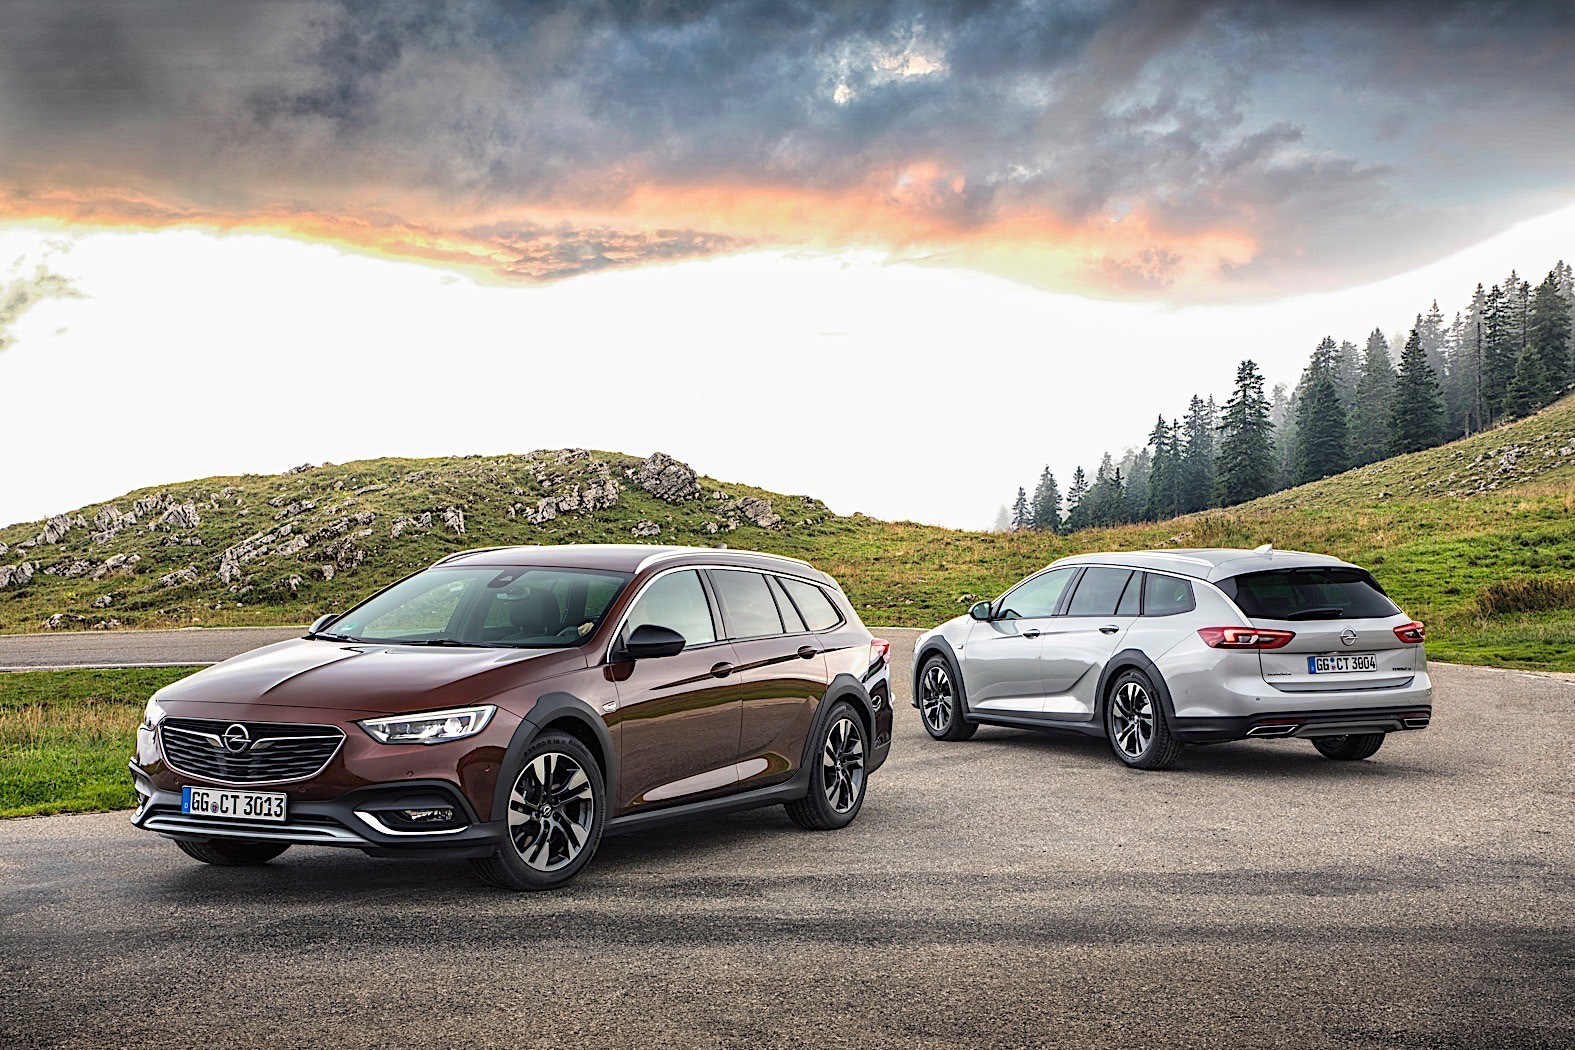 Opel To Custom Paint Insignia Models For Exclusive